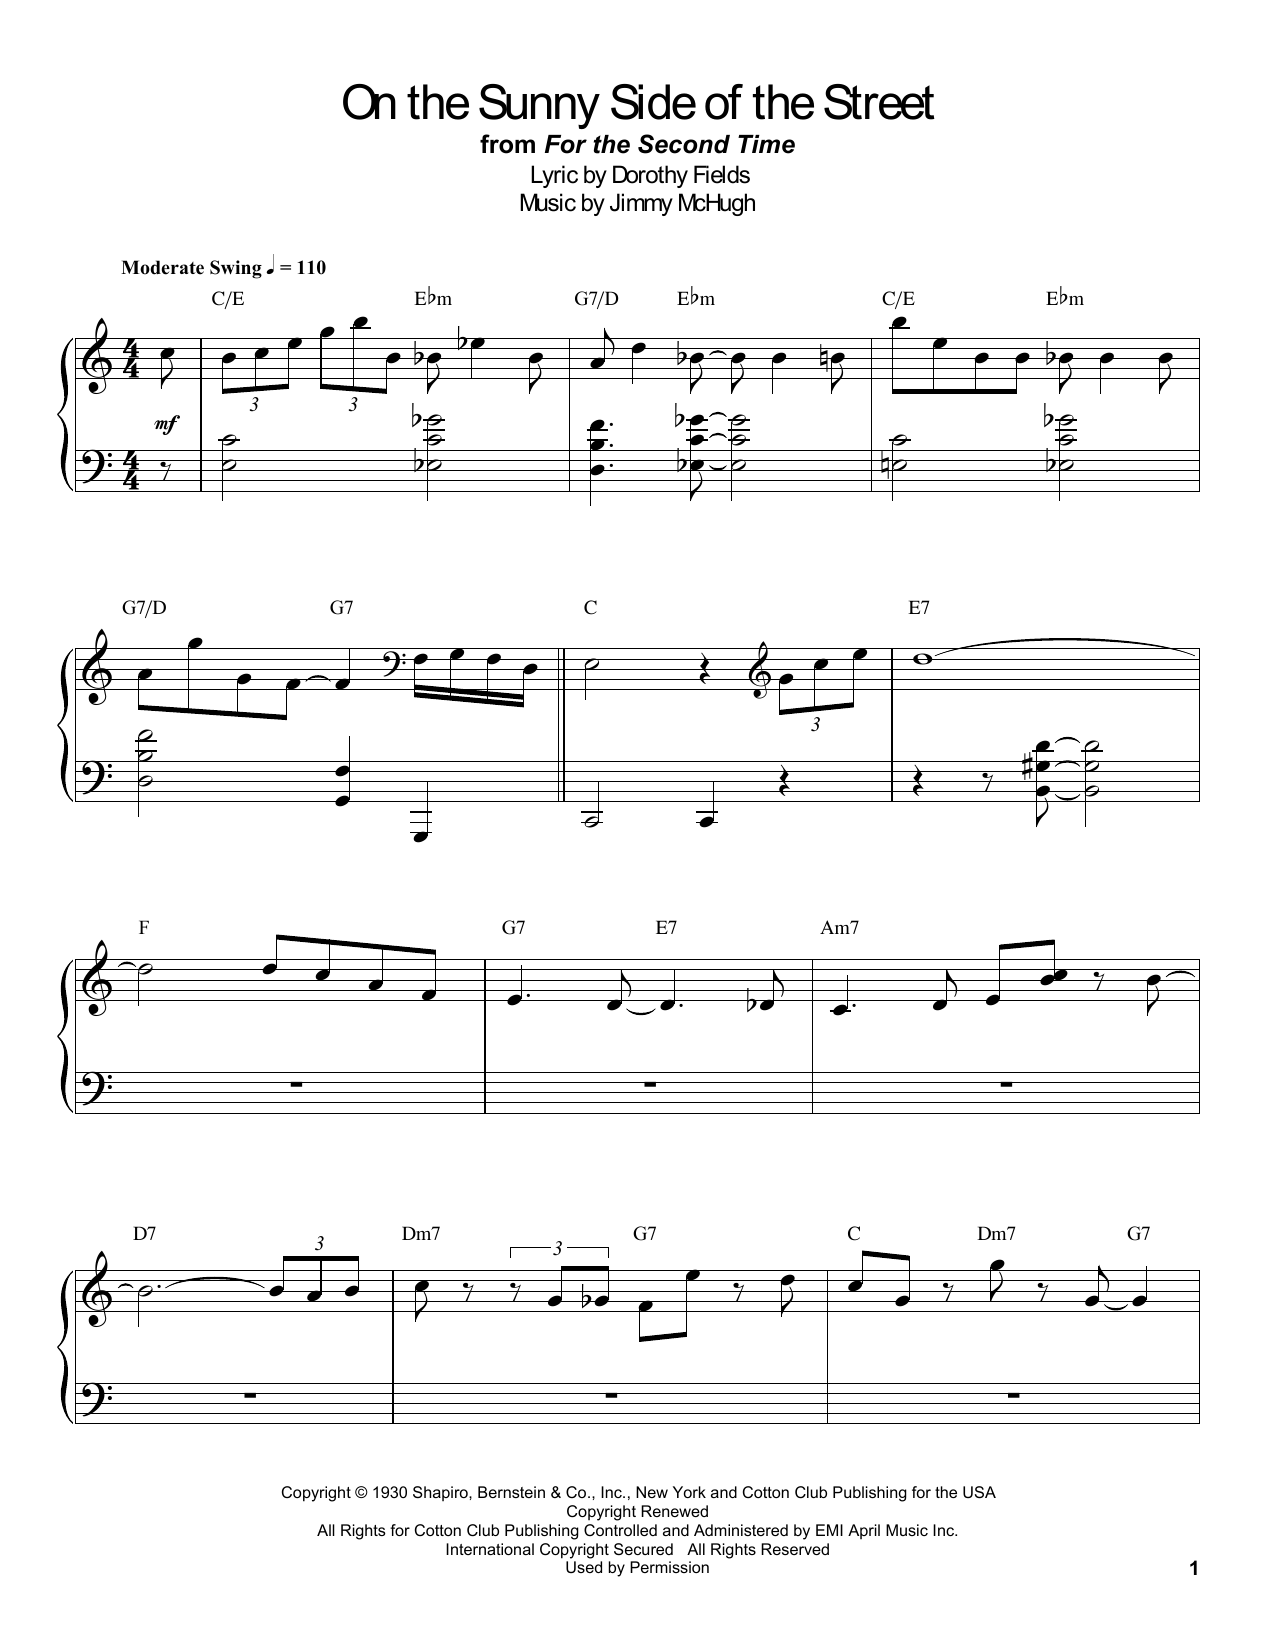 Count Basie On The Sunny Side Of The Street sheet music notes and chords